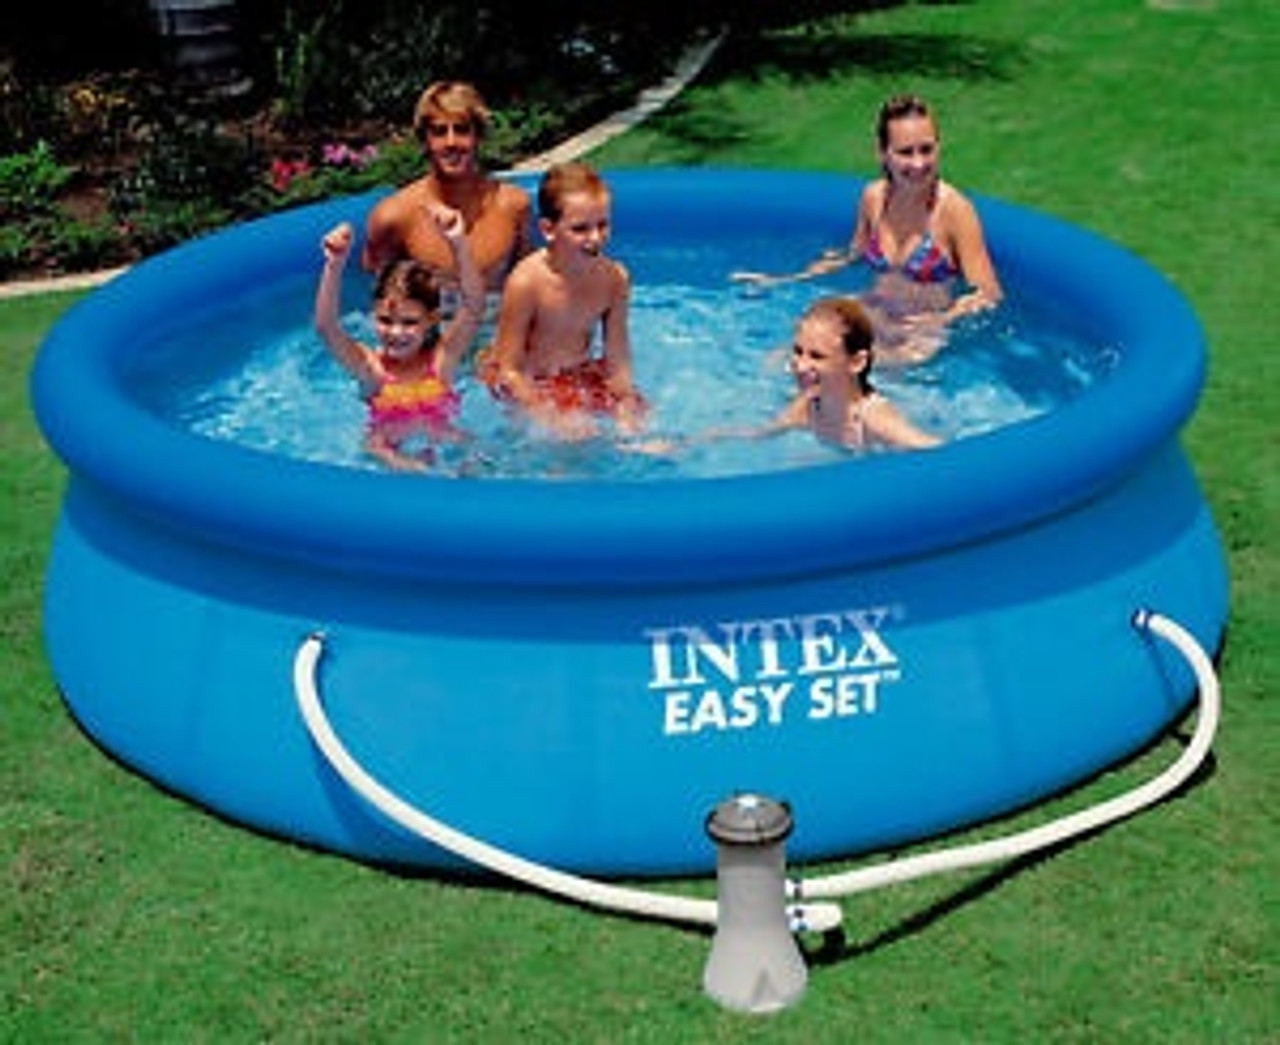 EASY SET INFLATABLE POOL 10FT